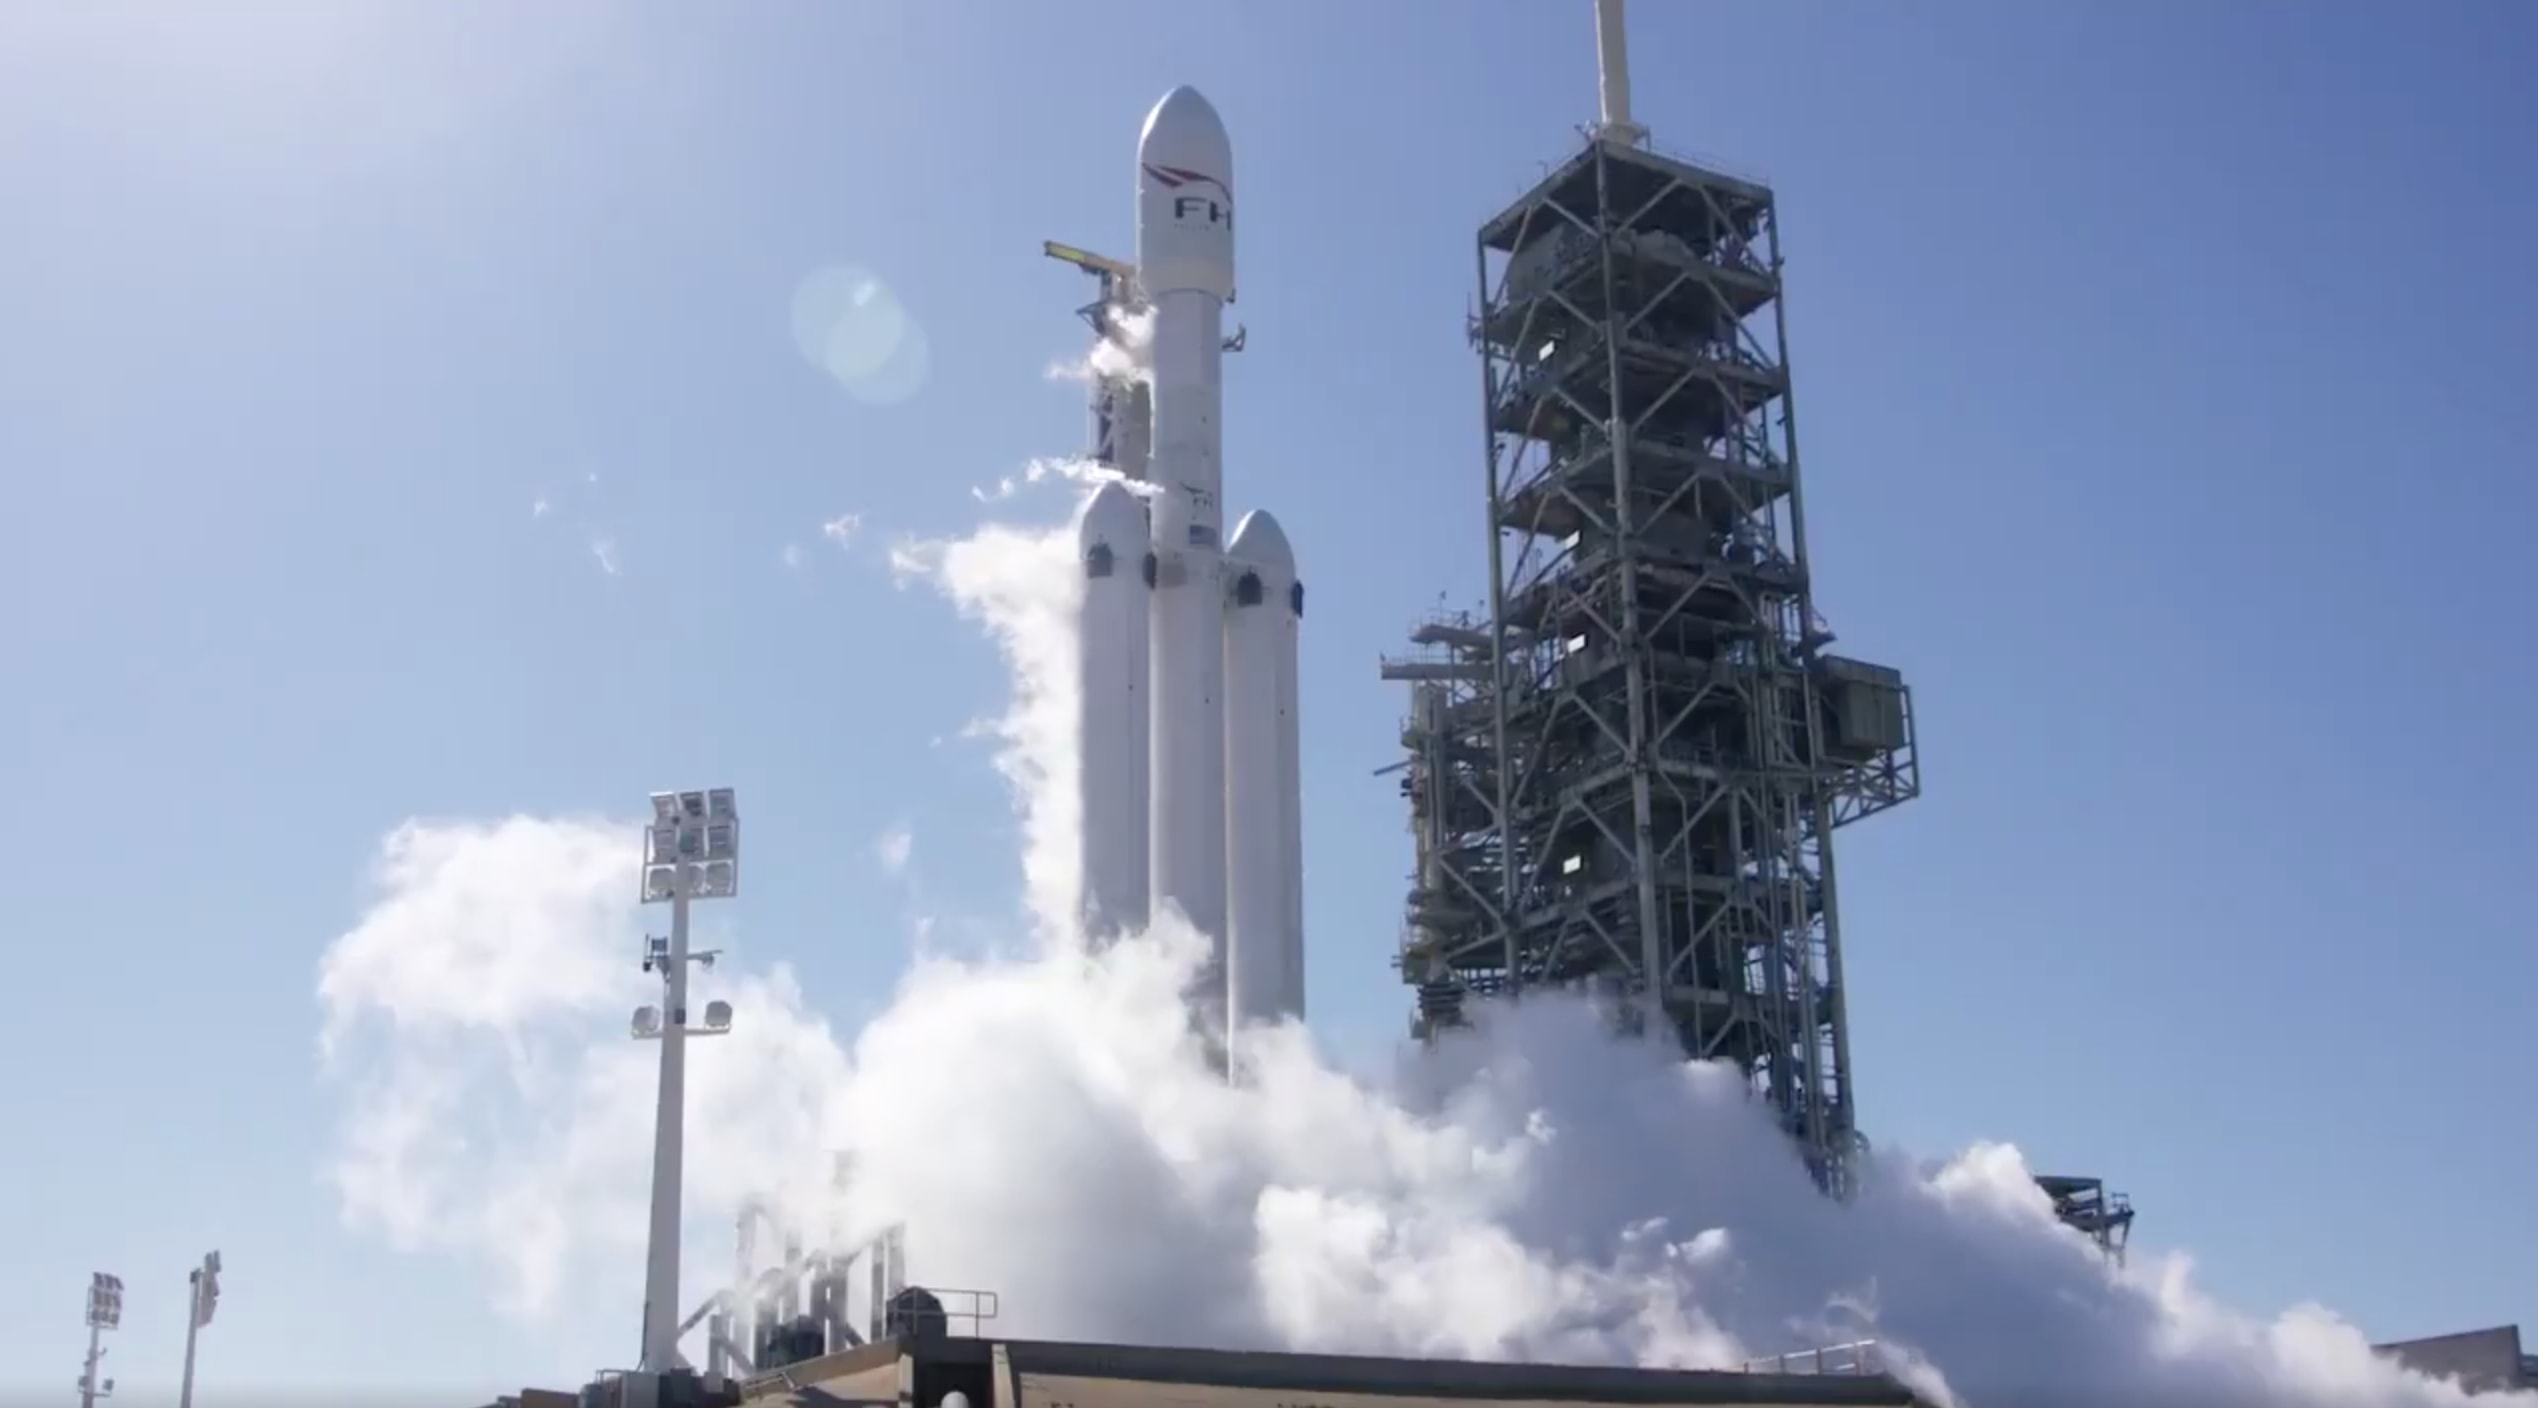 Weather looks good for Thursday launch of upgraded Falcon 9